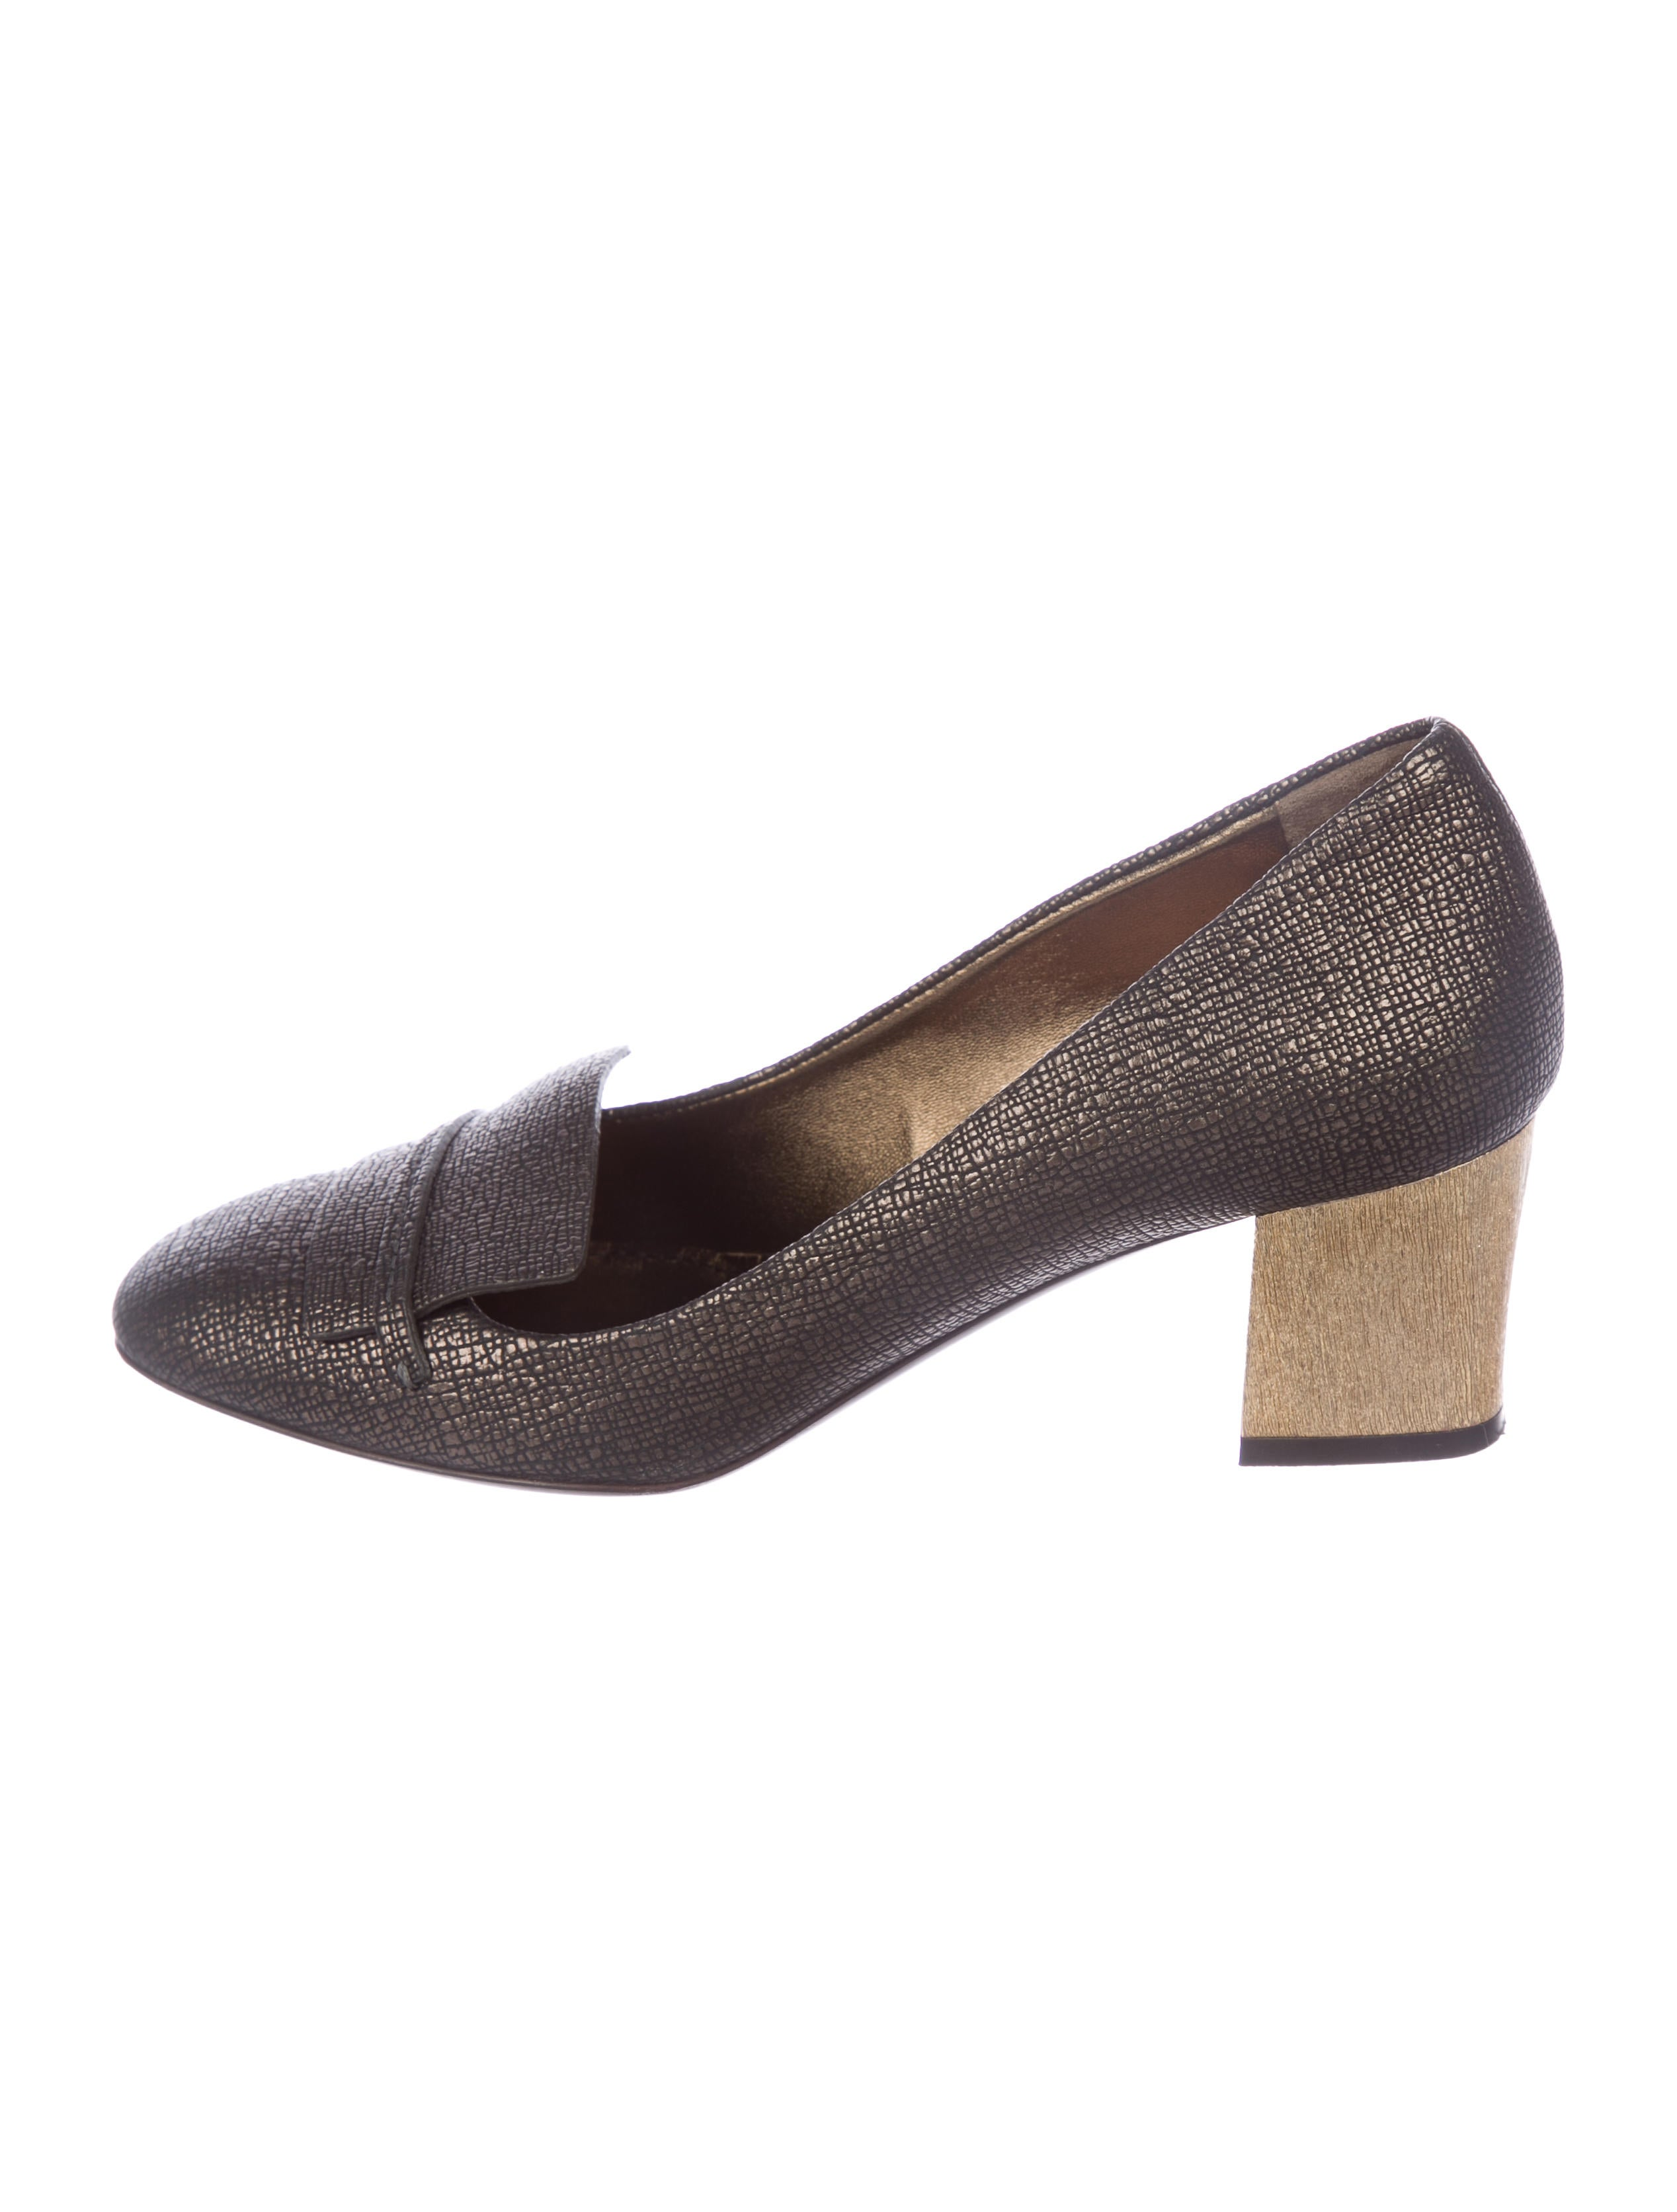 Lanvin Leather Square-Toe Pumps outlet with mastercard original outlet low price fee shipping websites cheap online buy cheap low shipping tVyUxQnH